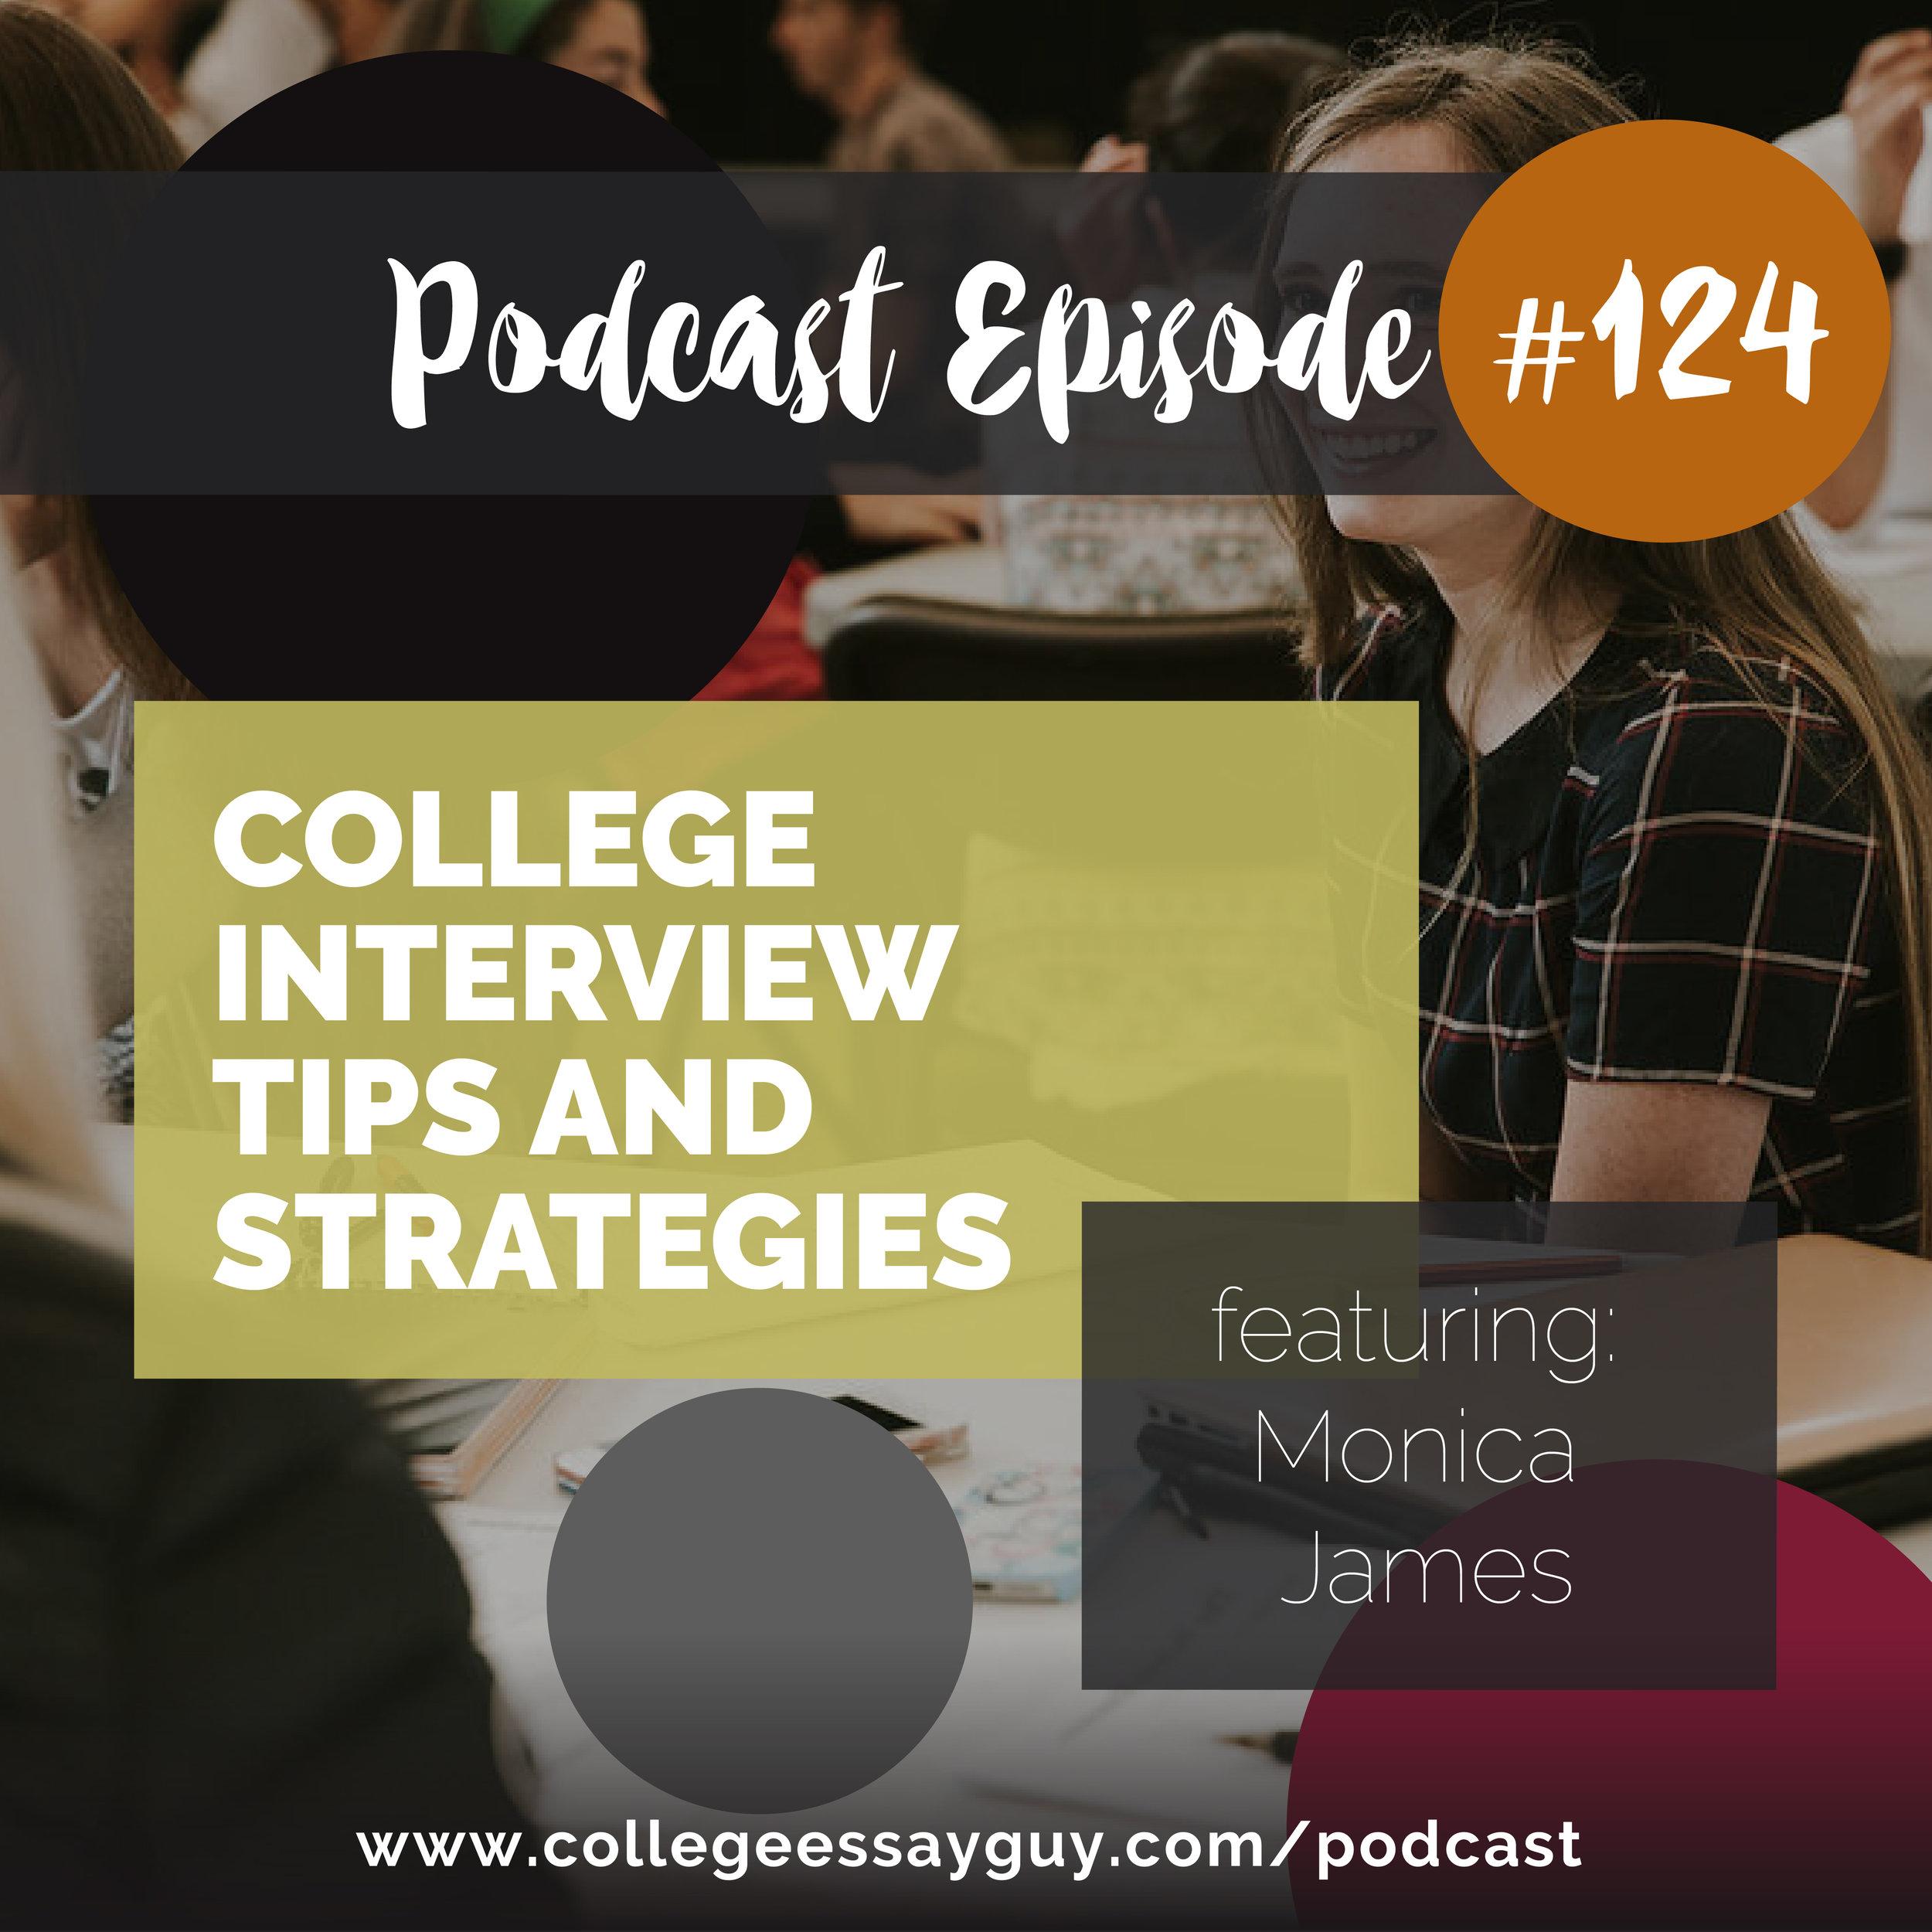 Monica James absolutely crushes it in this interview, offering more practical advice than you'll find in most weekend workshops on this topic. And it's no wonder: for years she's been teaching people (and in particular high school students) how to give great interviews.